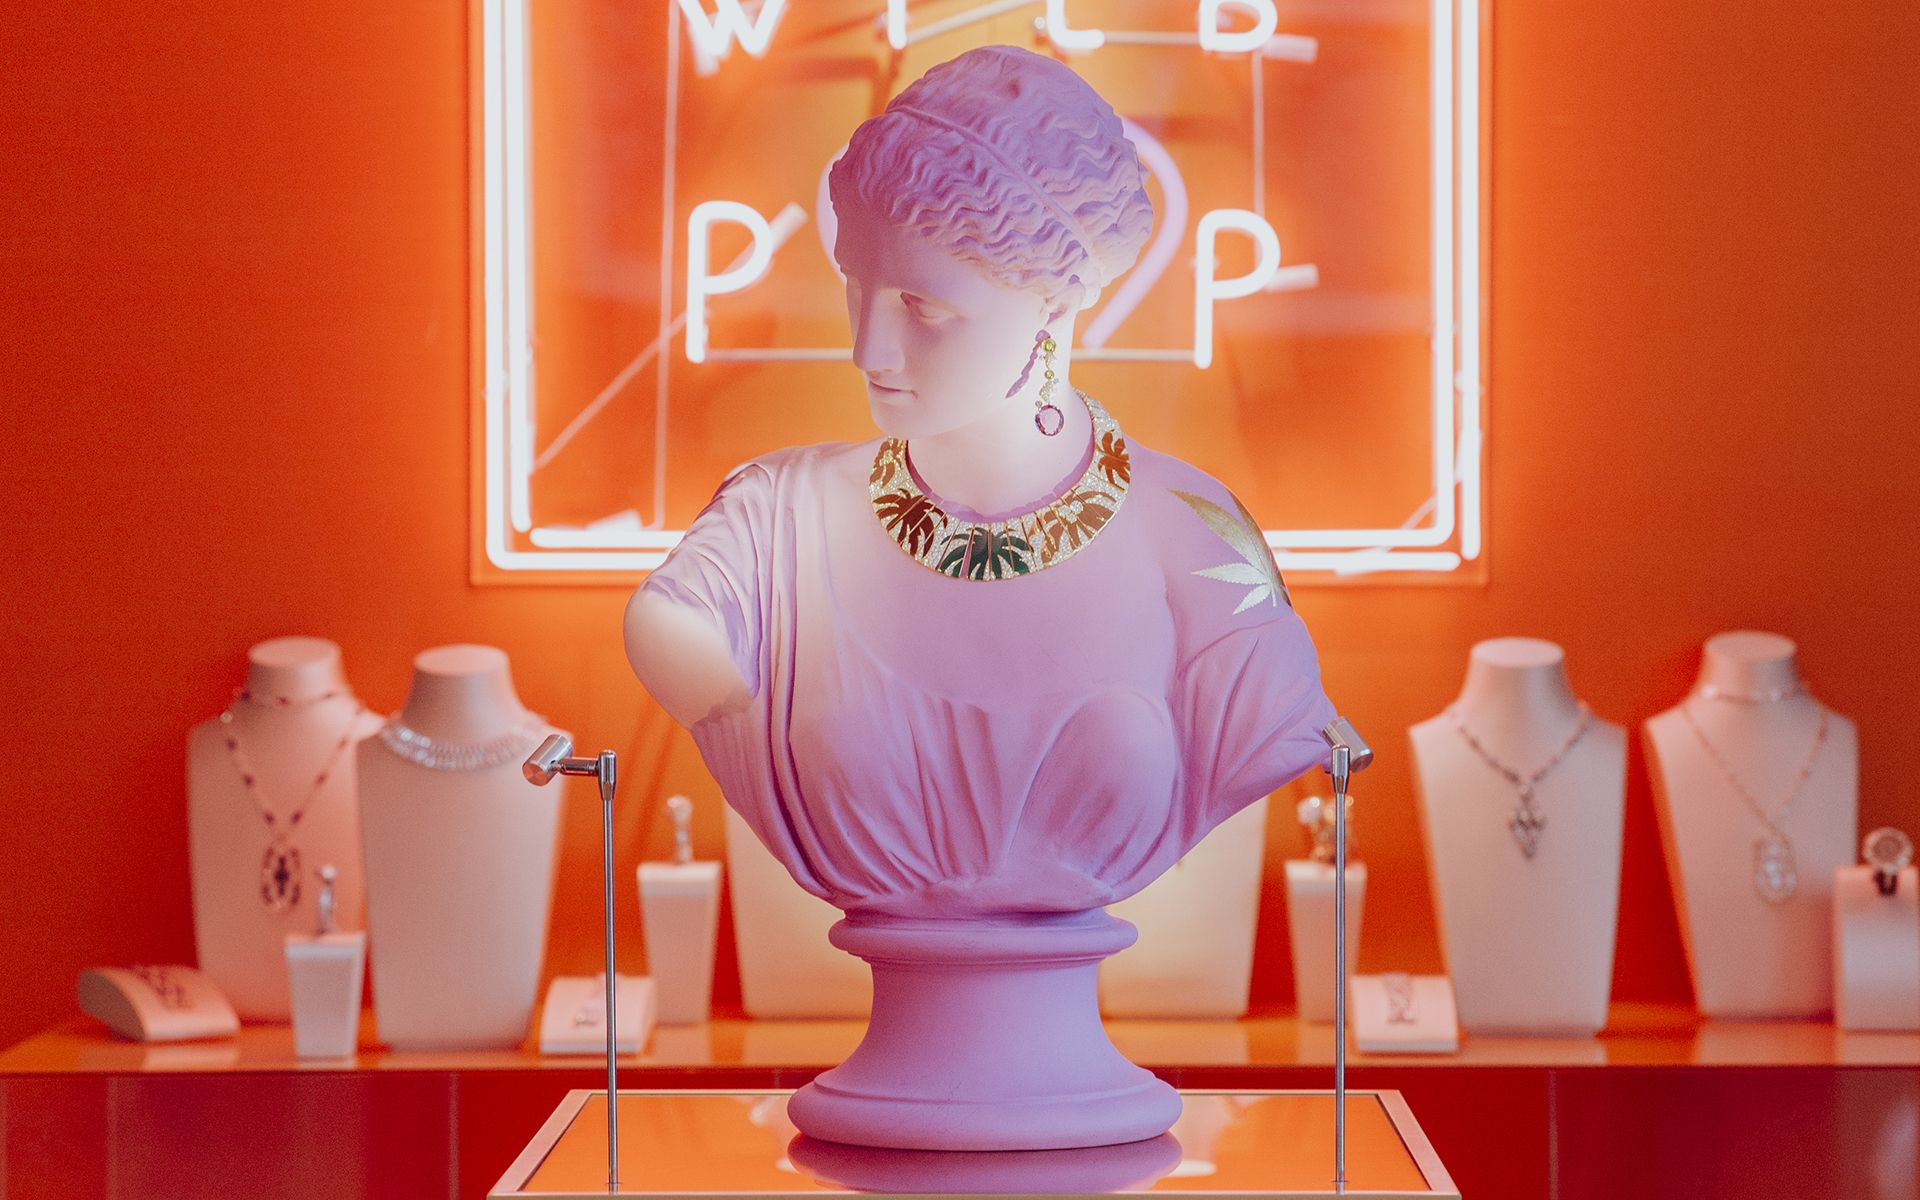 How Bulgari's 'Wild Pop' Haute Jewellery Collection Restored 21st Century Glamour